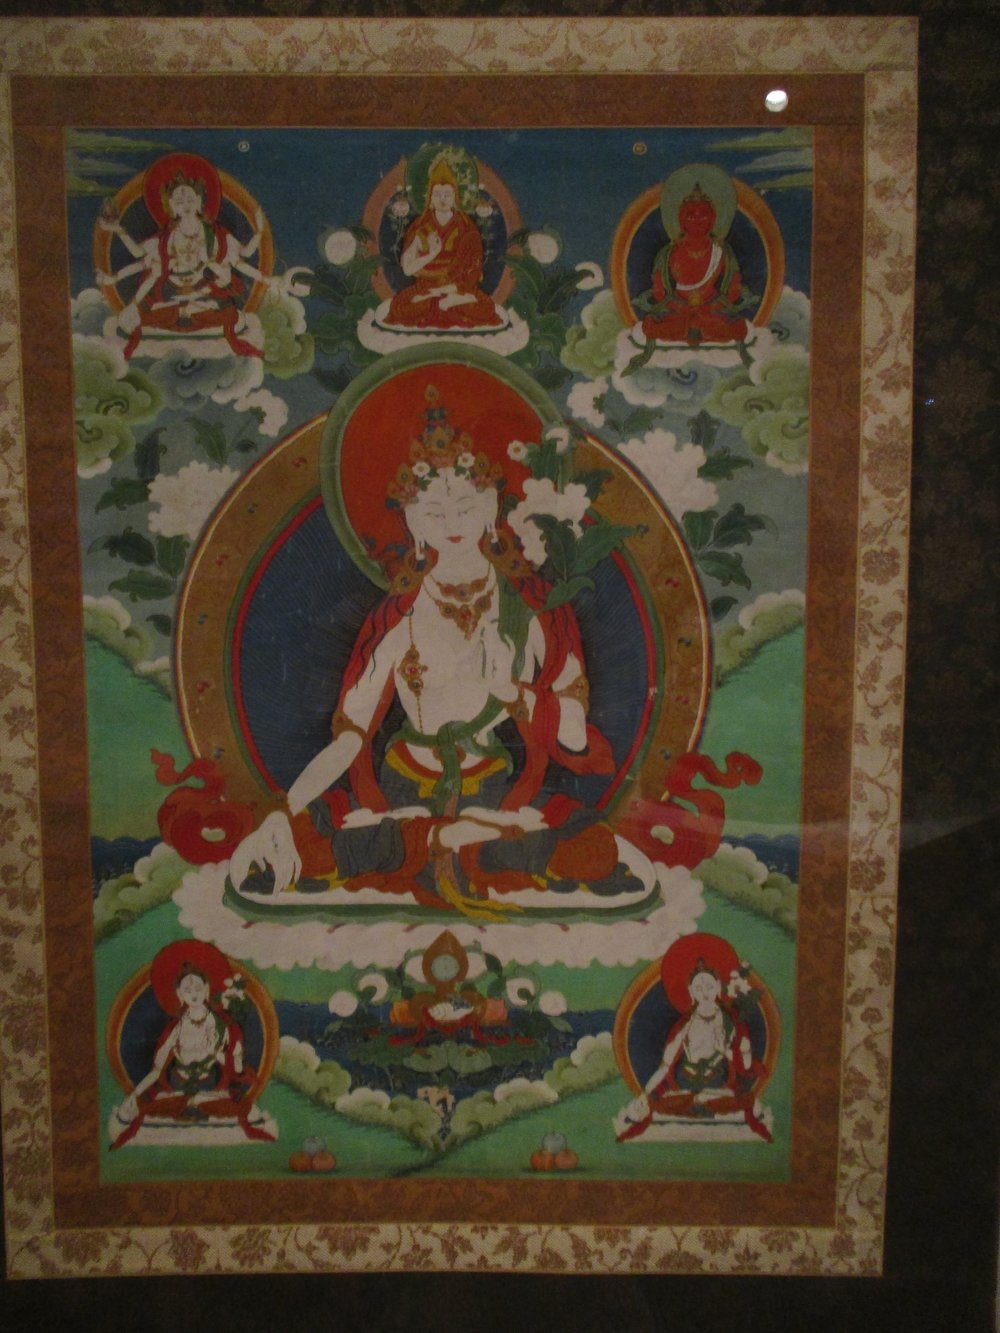 The Buddhist deity White Tara, also the bodhisattva of compassion.